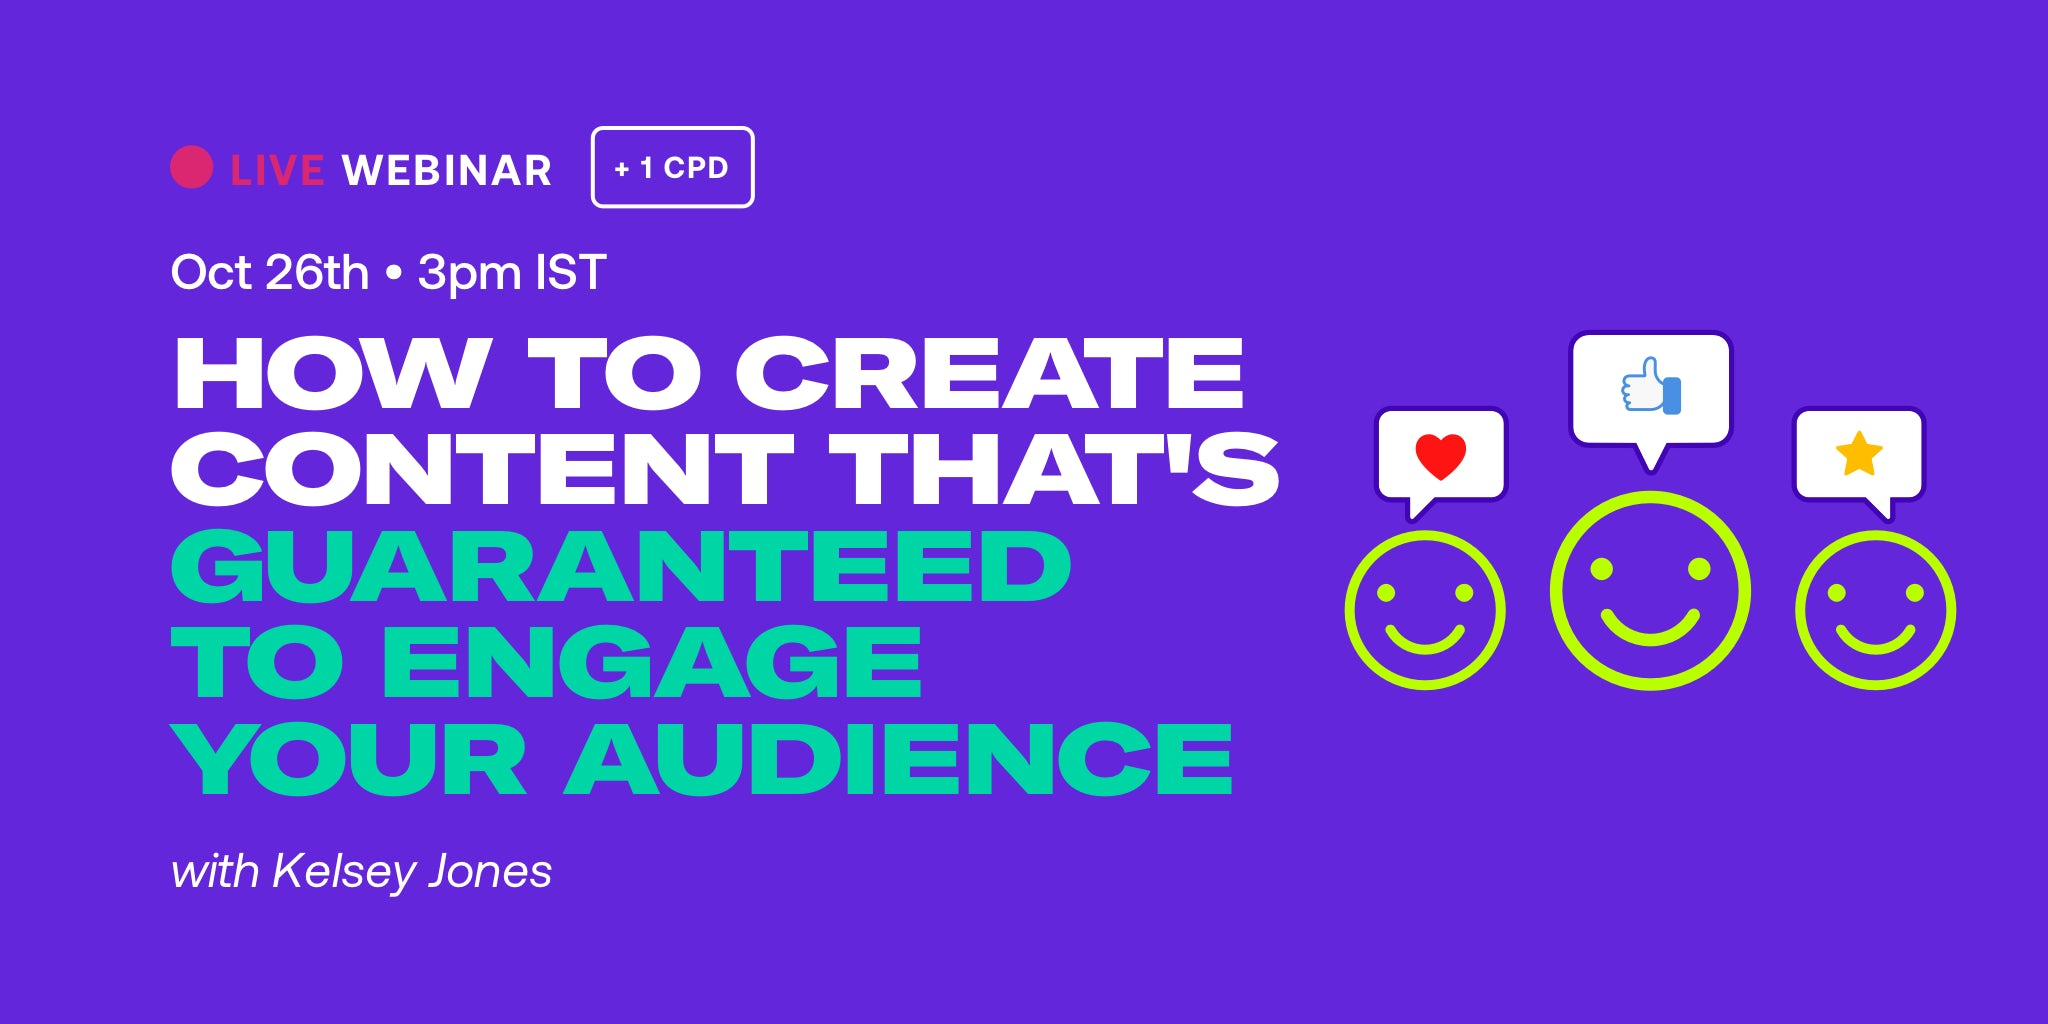 How to Create Content that's Guaranteed to Engage Your Audience